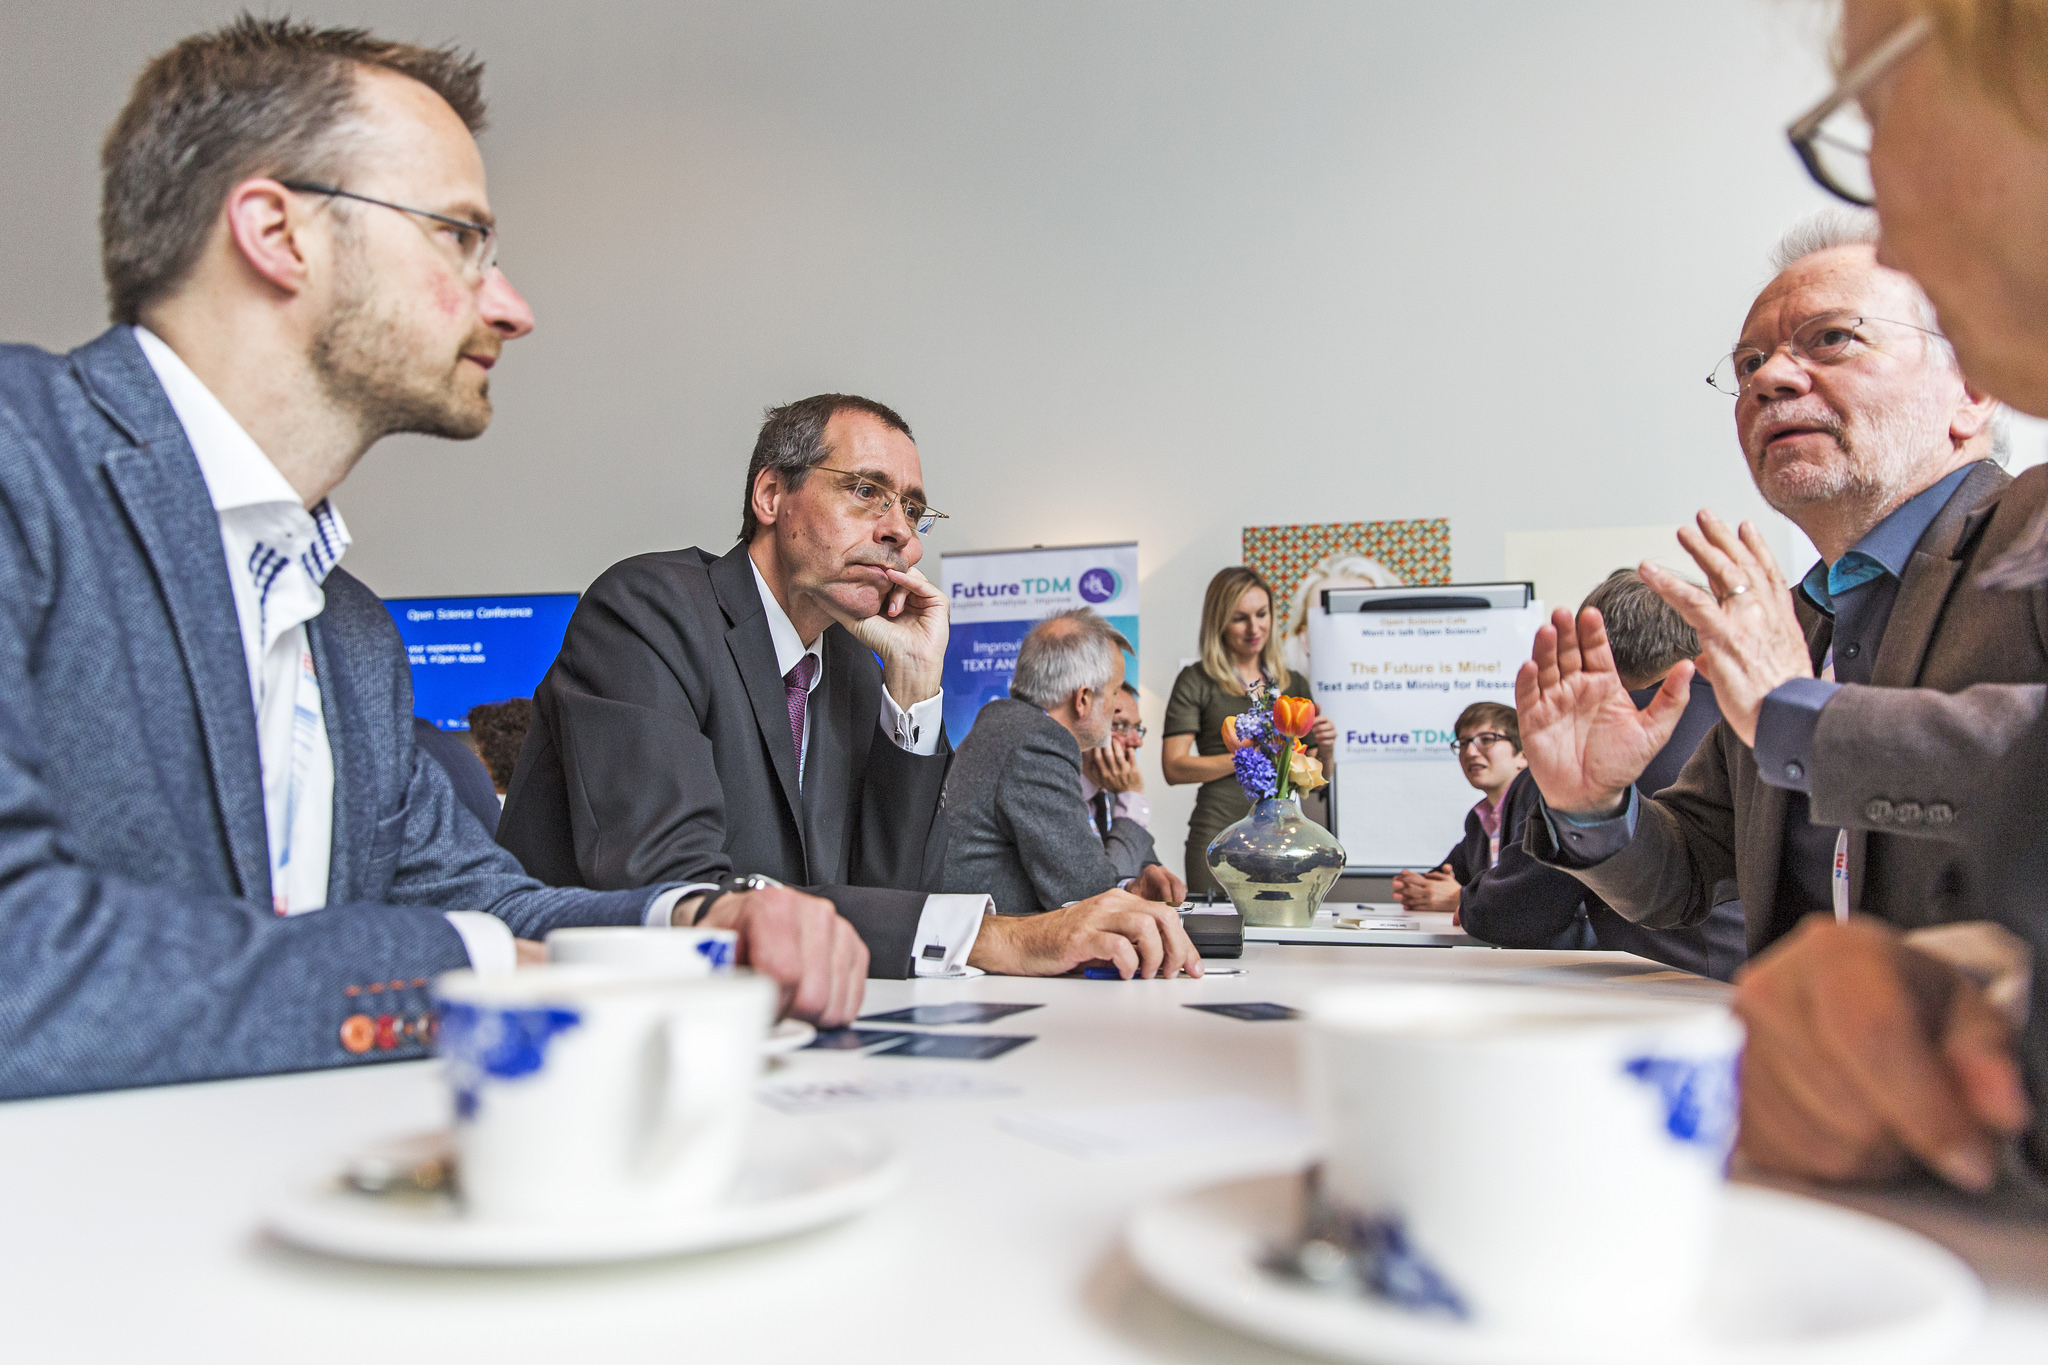 The FutureTDM Open Science Cafe. Image CC BY NL2016EU